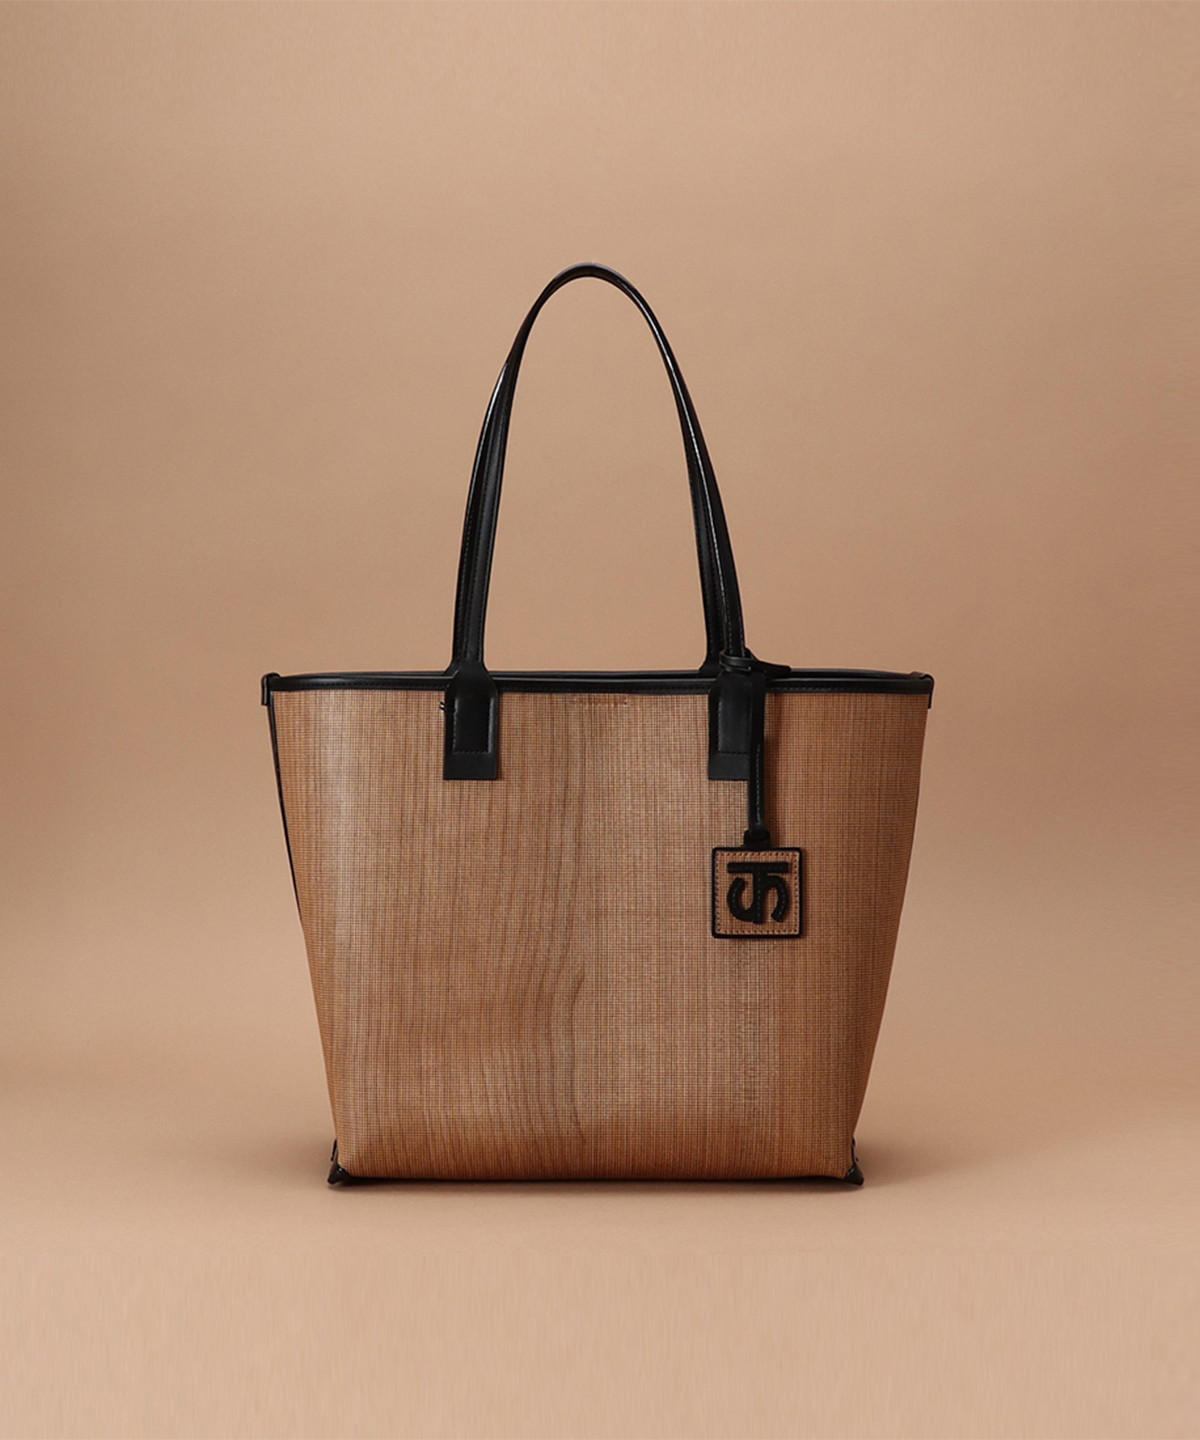 Sustainable ST トートバッグ